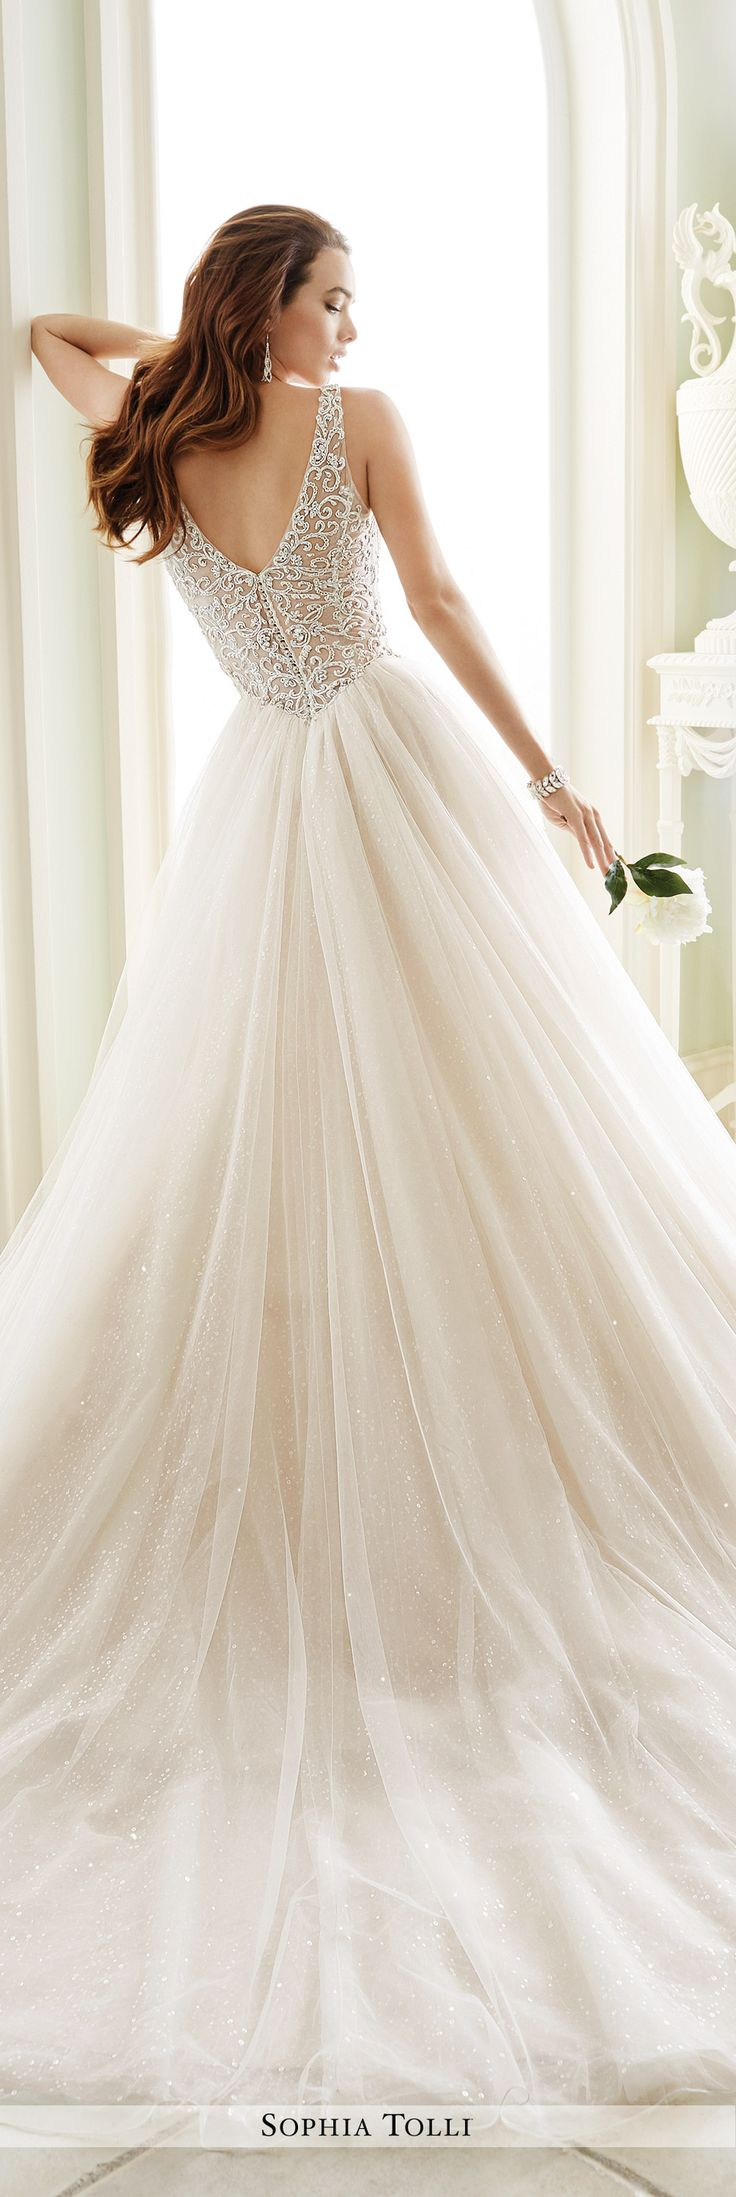 Sophia Tolli Fall 2016 Wedding Gown Collection - Style No. Y21673 Maddalena - sleeveless misty tulle ball gown wedding dress with hand-beaded bodice